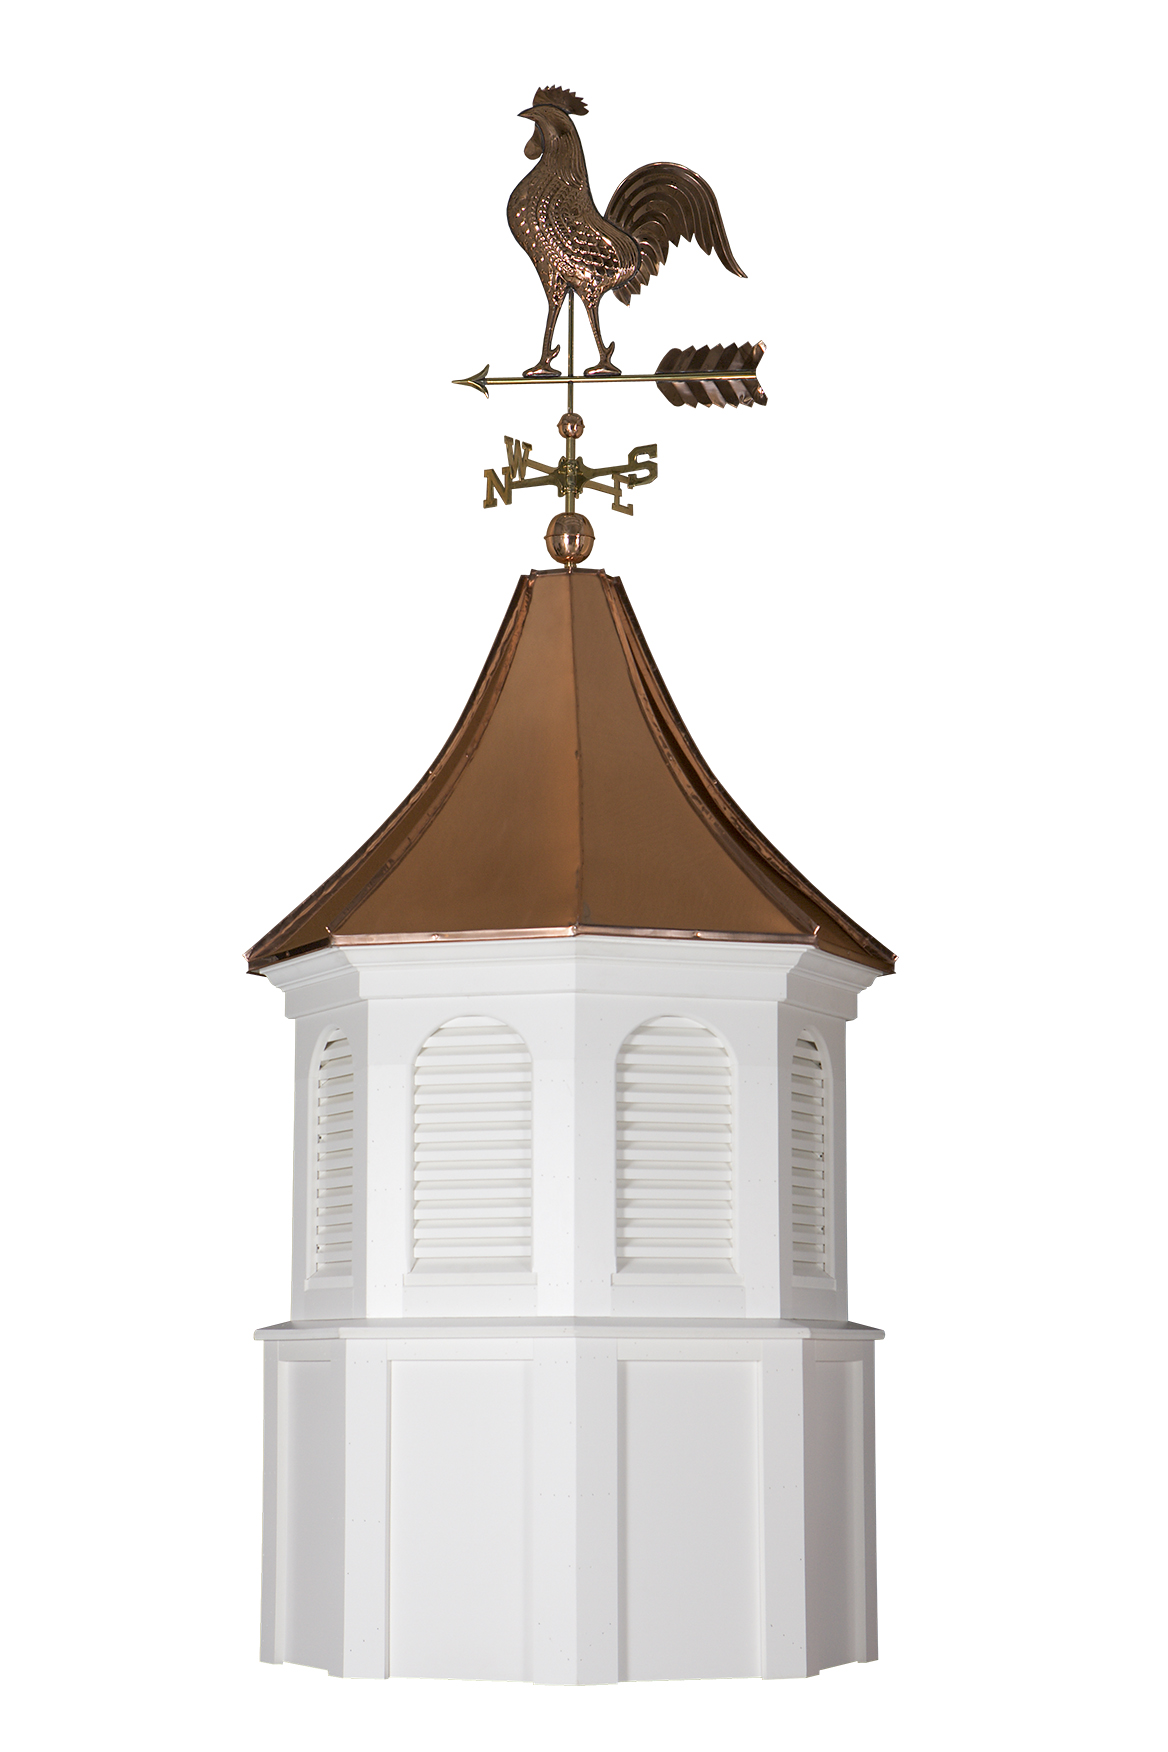 harvard cupola with weathervane and finial